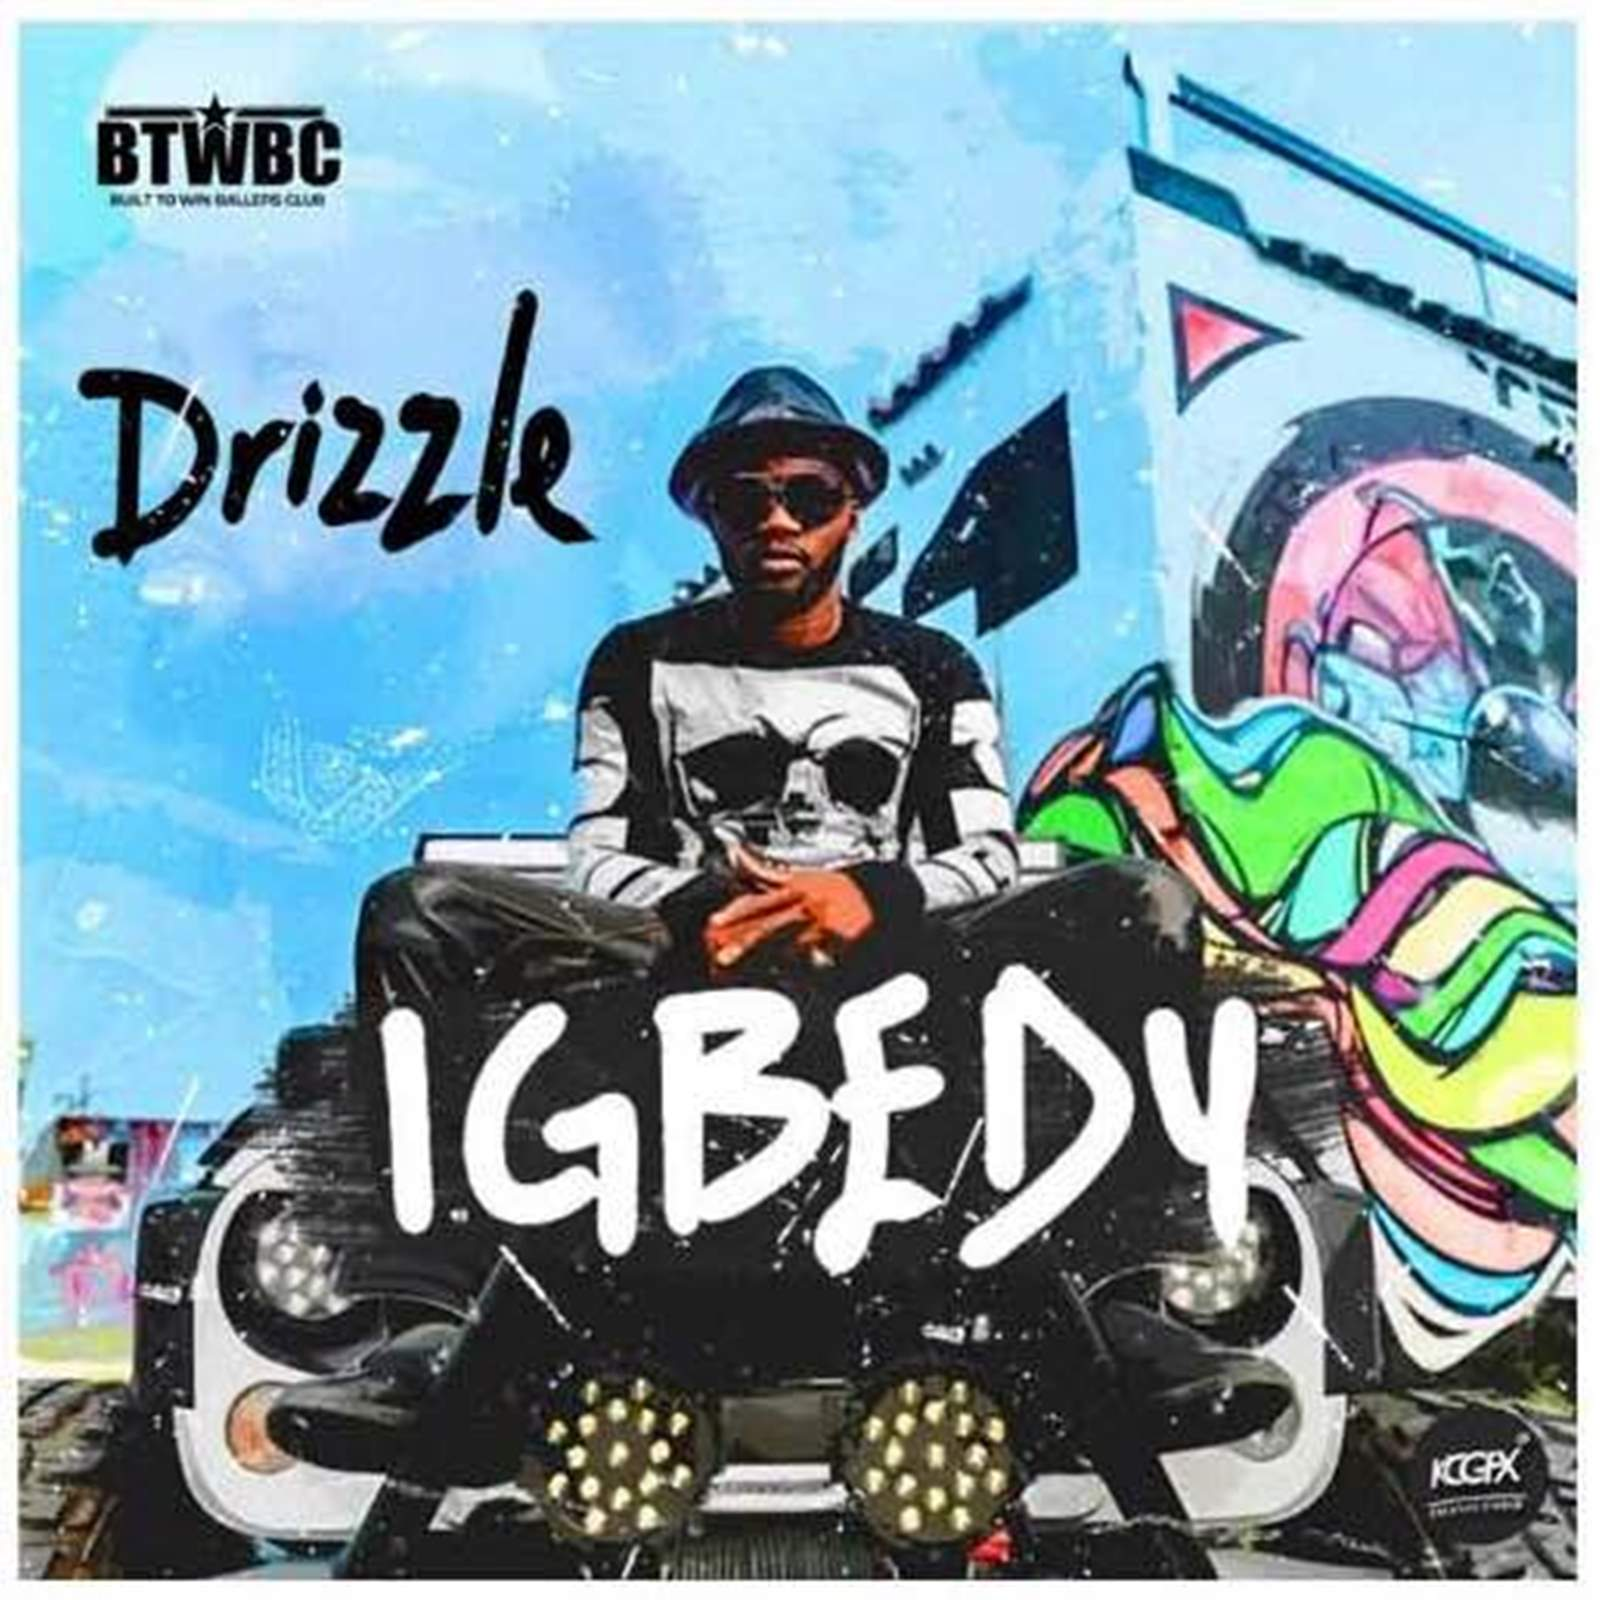 VIDEO: Drizzle – Igbedu